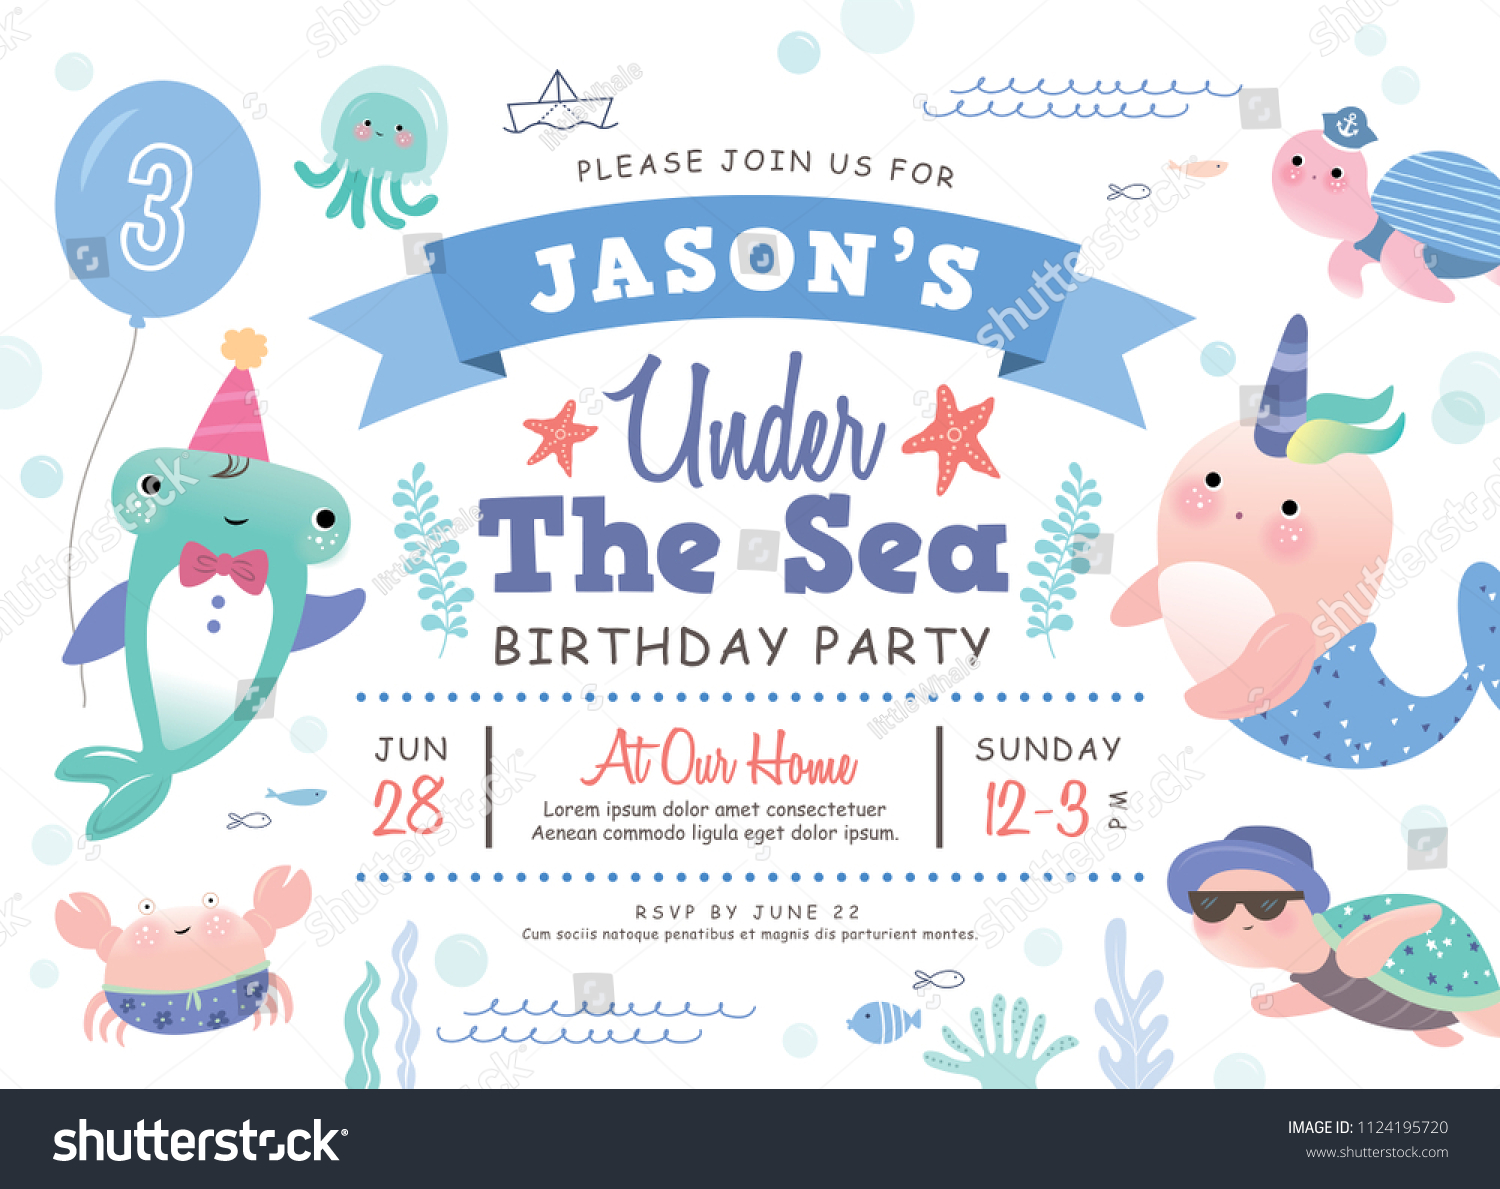 Kids Birthday Party Under Sea Theme Stock Photo (Photo, Vector ...